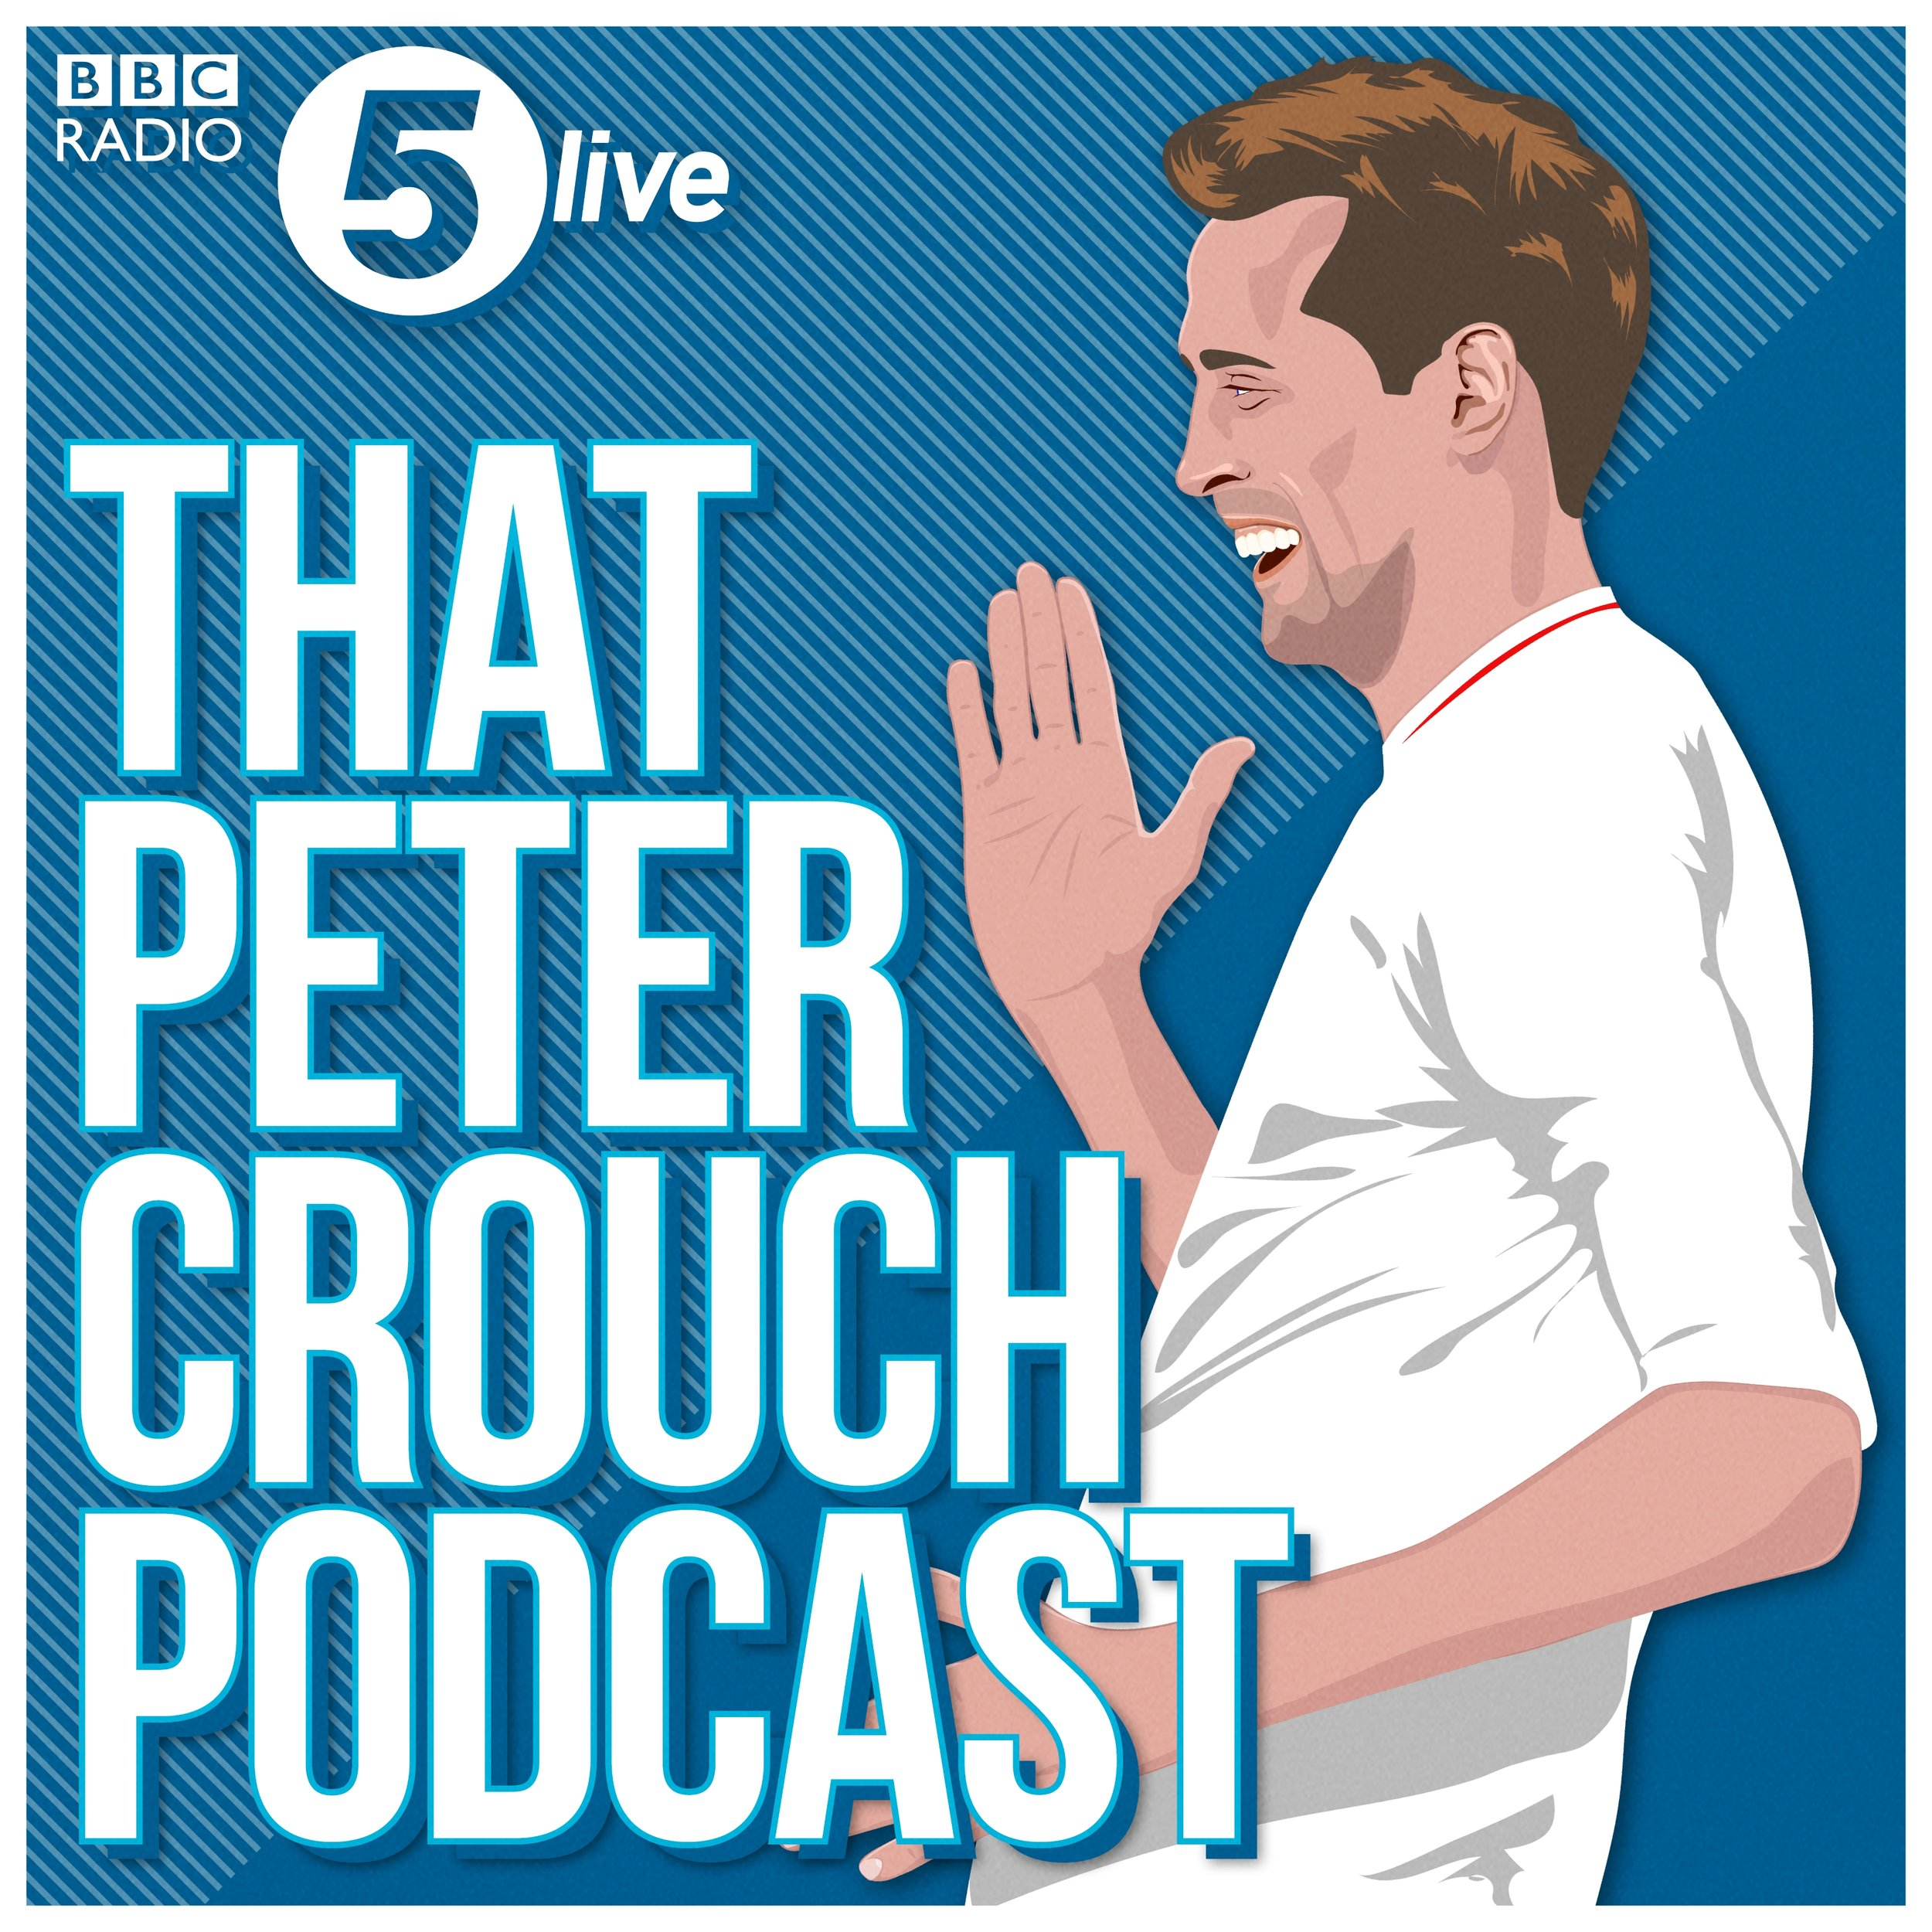 "Spotlight Award - The judges said That Peter Crouch Podcast, ""found a totally new perspective on one of the nation's most discussed past-times. Full of wit and personality, this is a podcast that has brought people together, regardless of which club they support."""